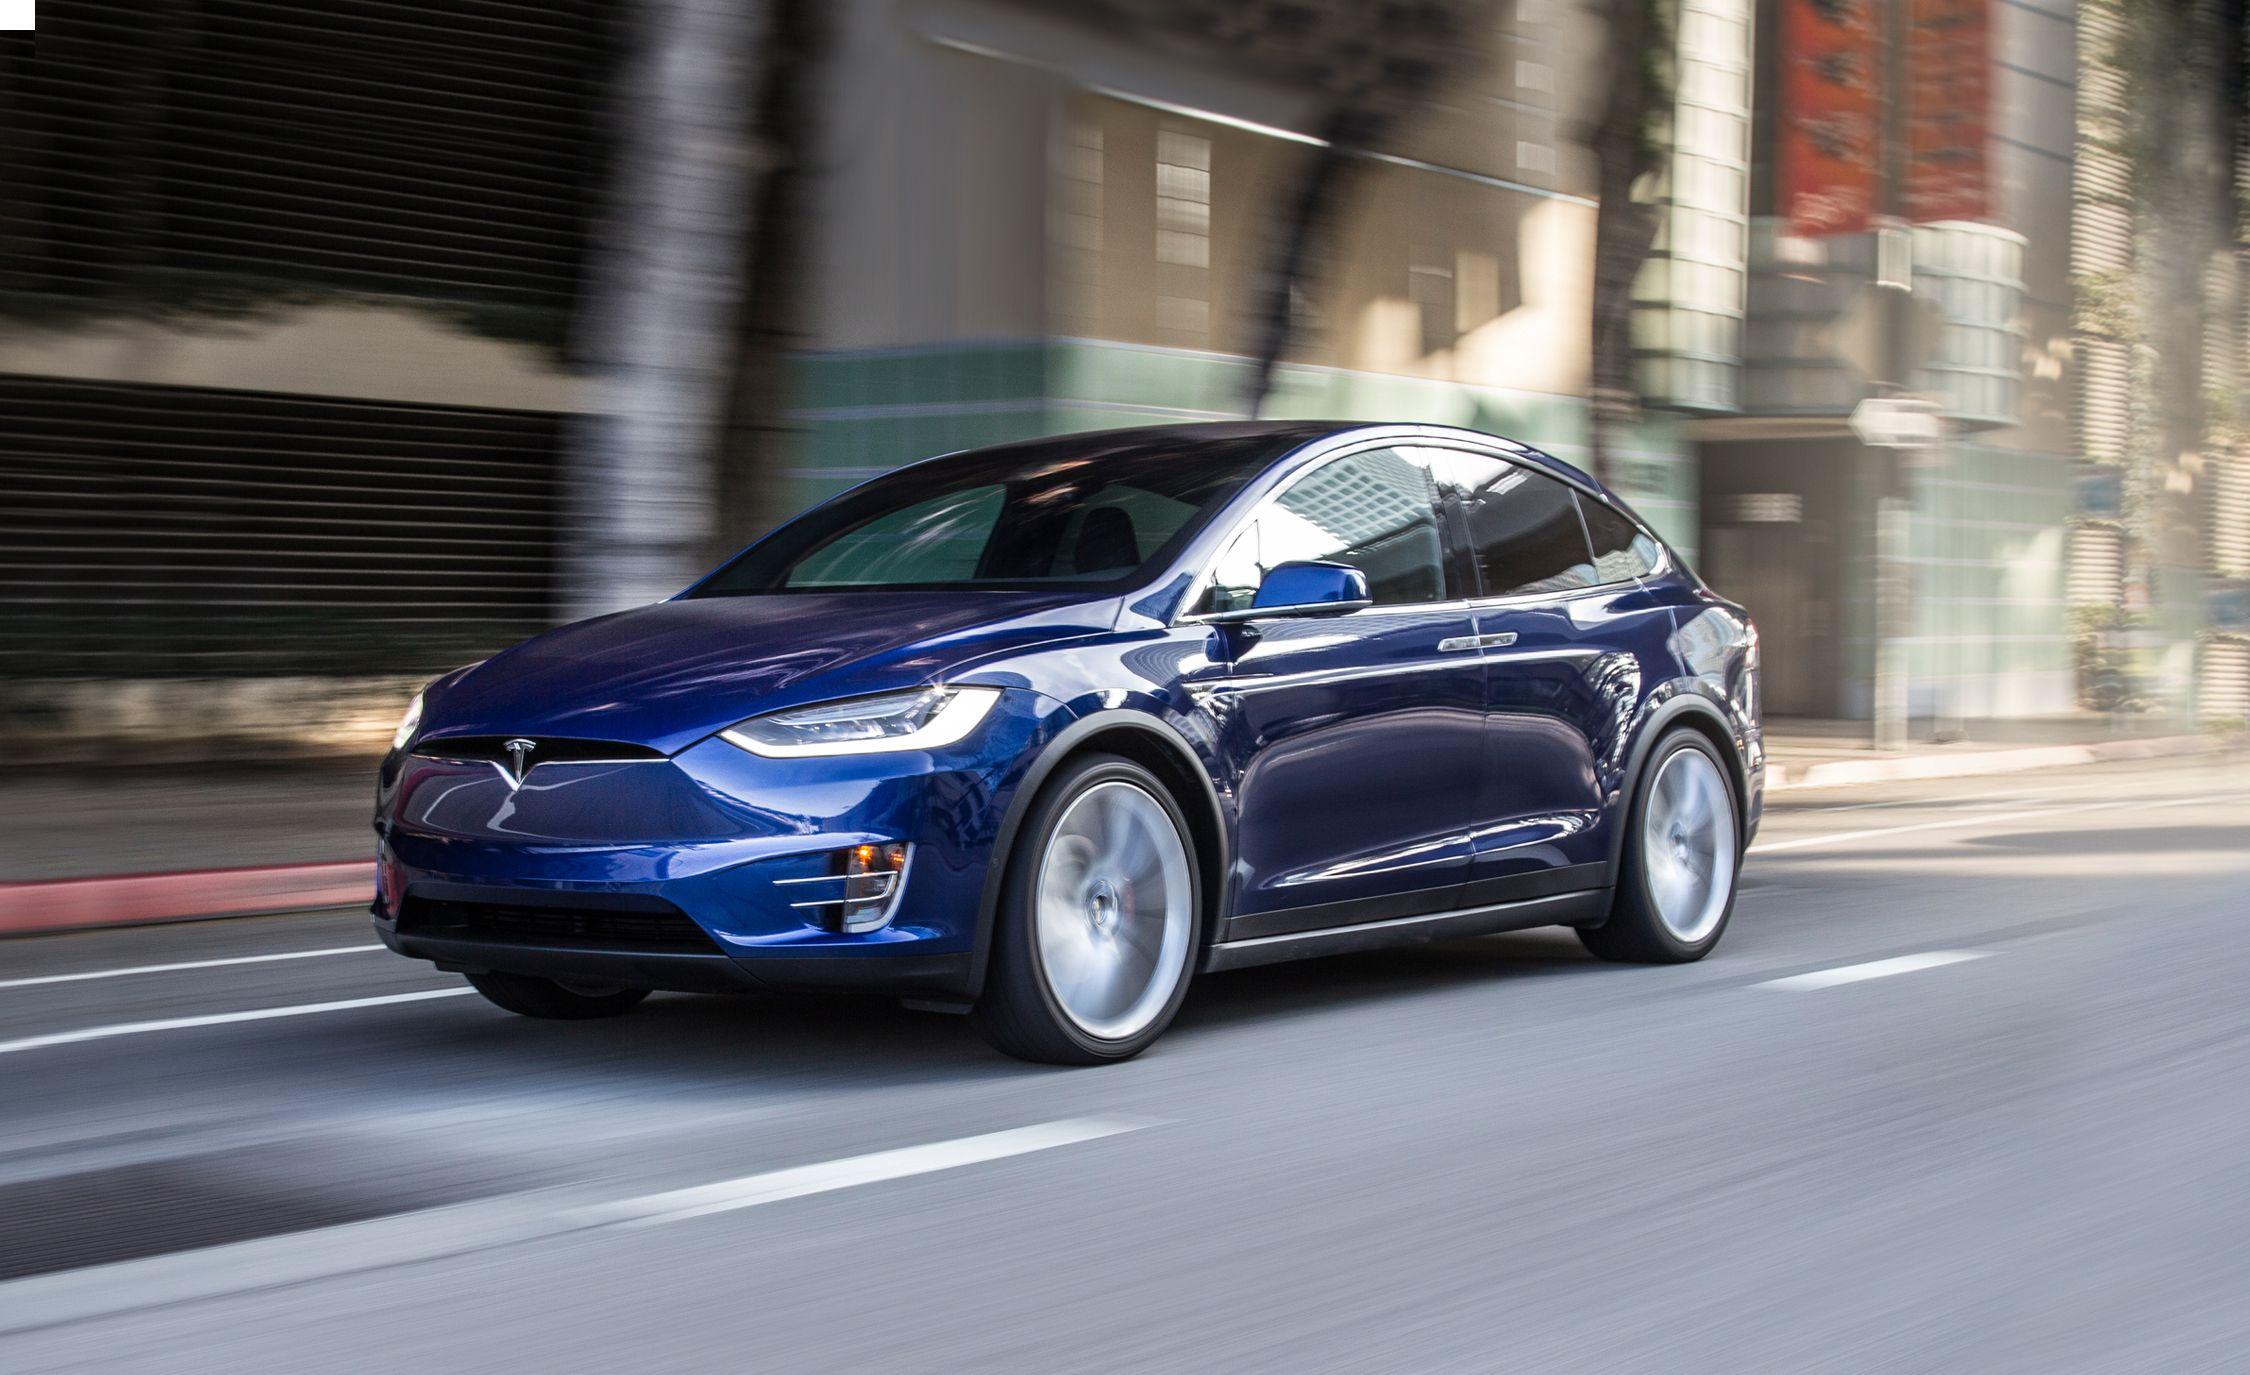 Tesla Model X Reviews Tesla Model X Price s and Specs